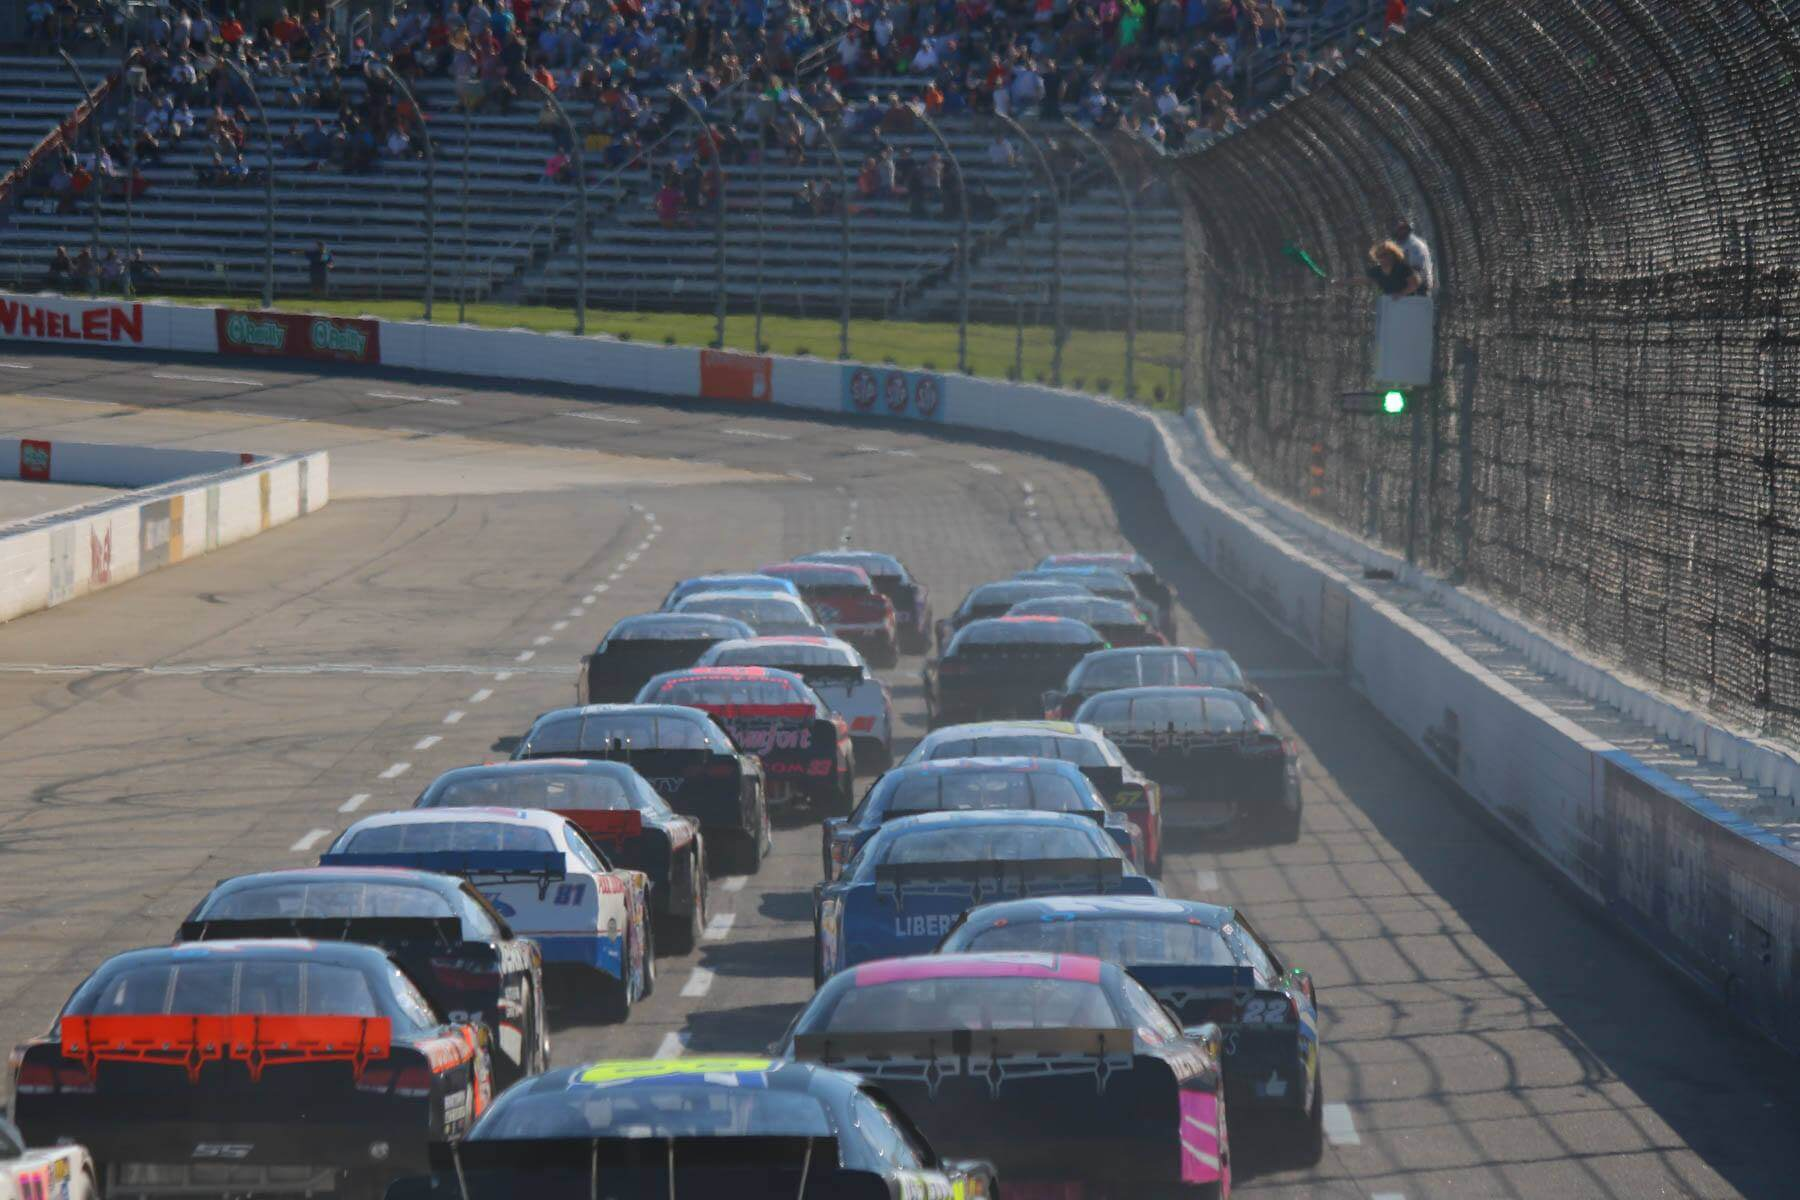 Valley Star Credit Union 300 at Martinsville Speedway